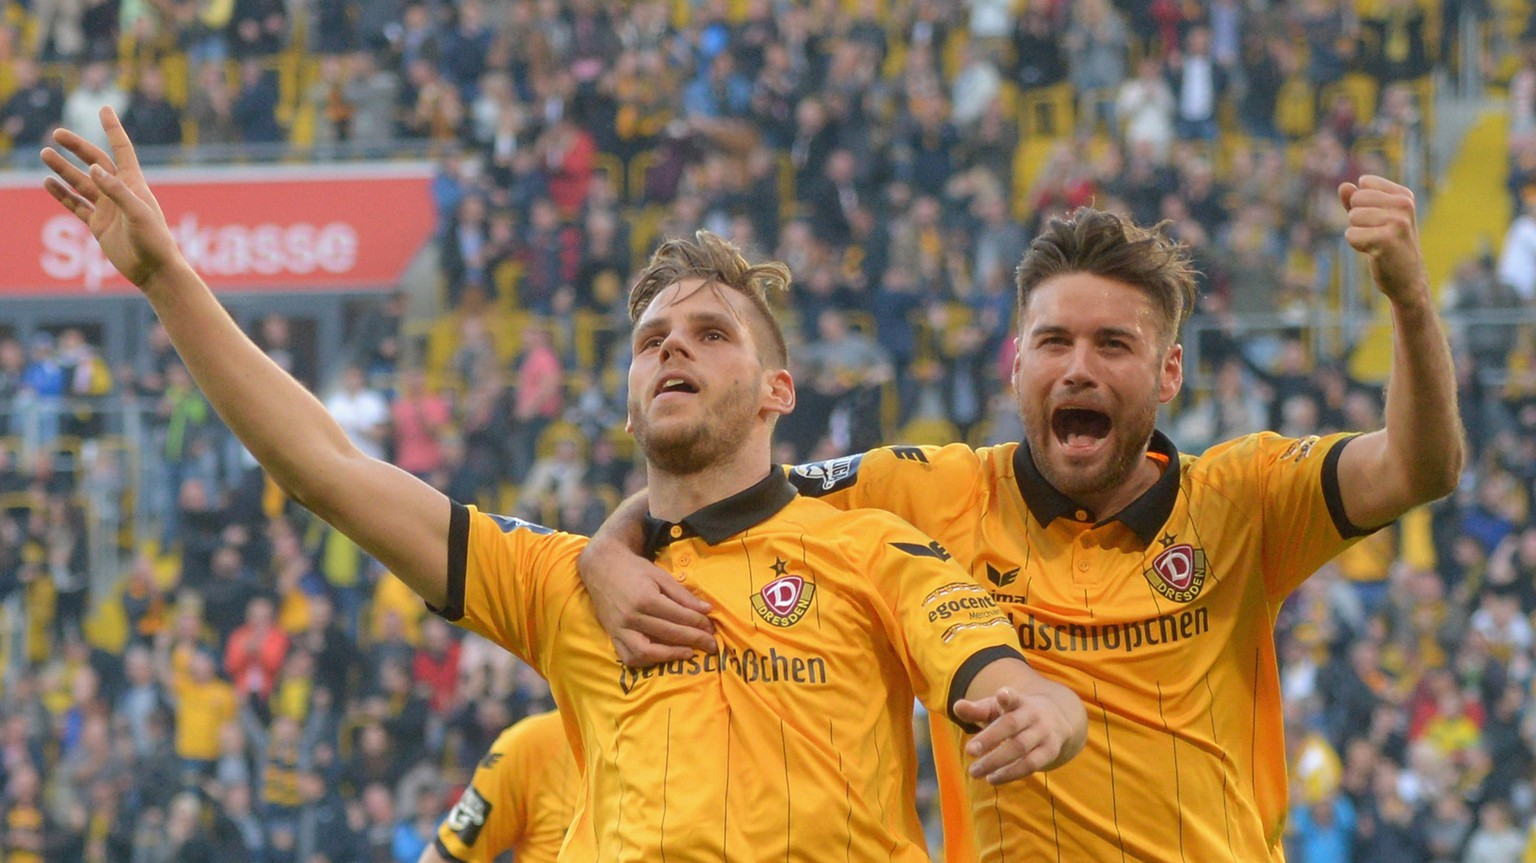 DRESDEN, GERMANY - OCTOBER 31:  Justin Eilers (L) of Dresden celebrates after scoring 3:1 with Niklas Kreuzer during the Third League match between SG Dynamo Dresden and 1. FC Magdeburg at Stadion Dresden on October 31, 2015 in Dresden, Germany.  (Photo by Thomas Eisenhuth/Bongarts/Getty Images)